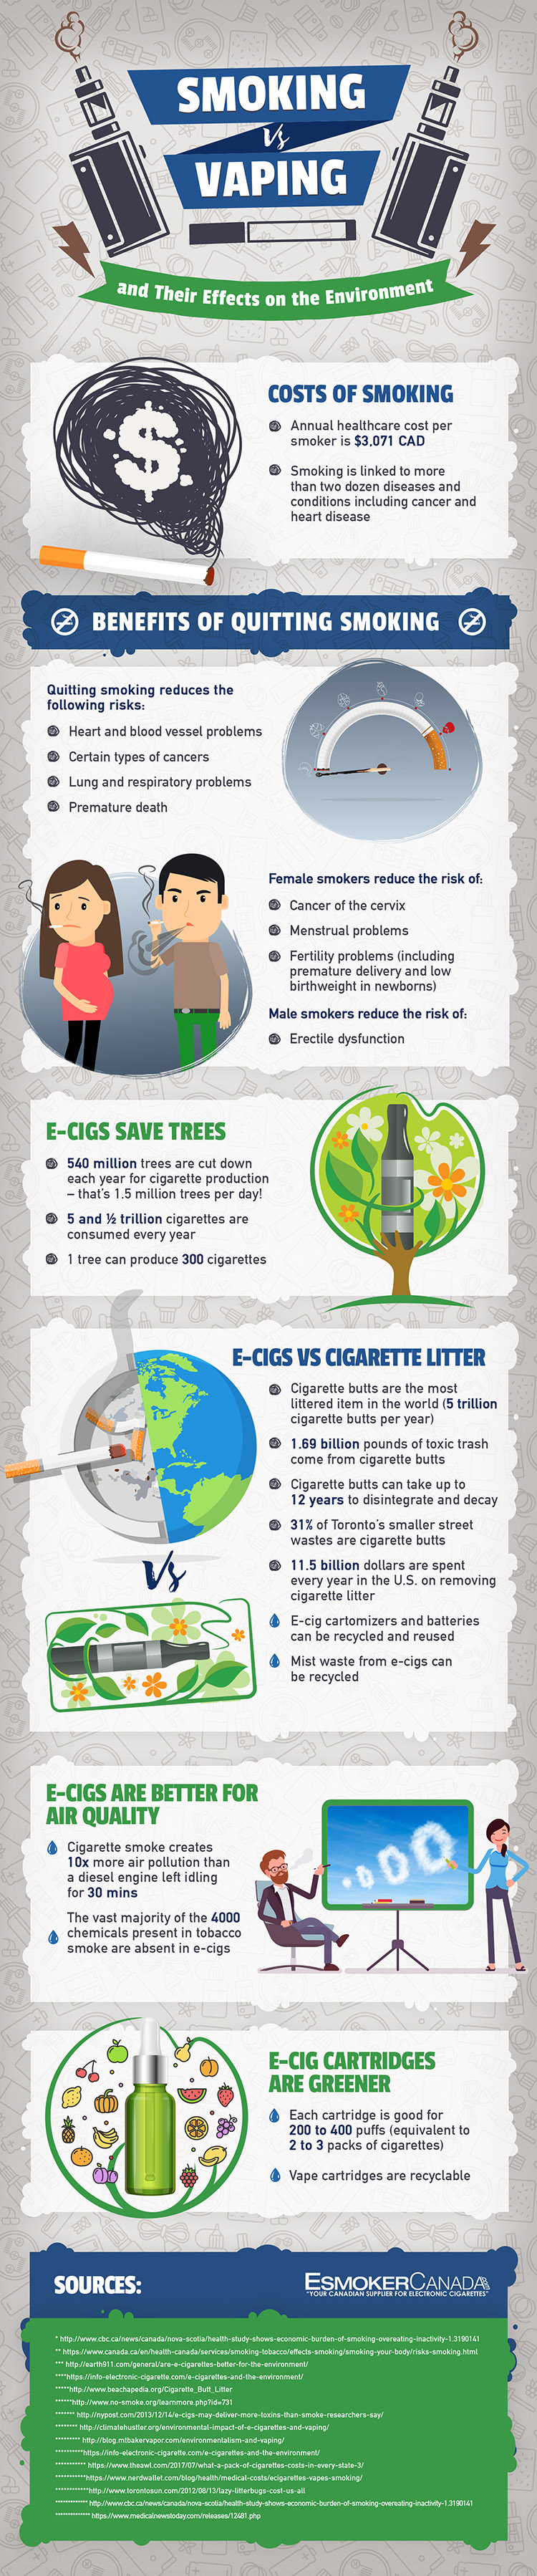 Smoking Vs Vaping and Their Effects on the Environment